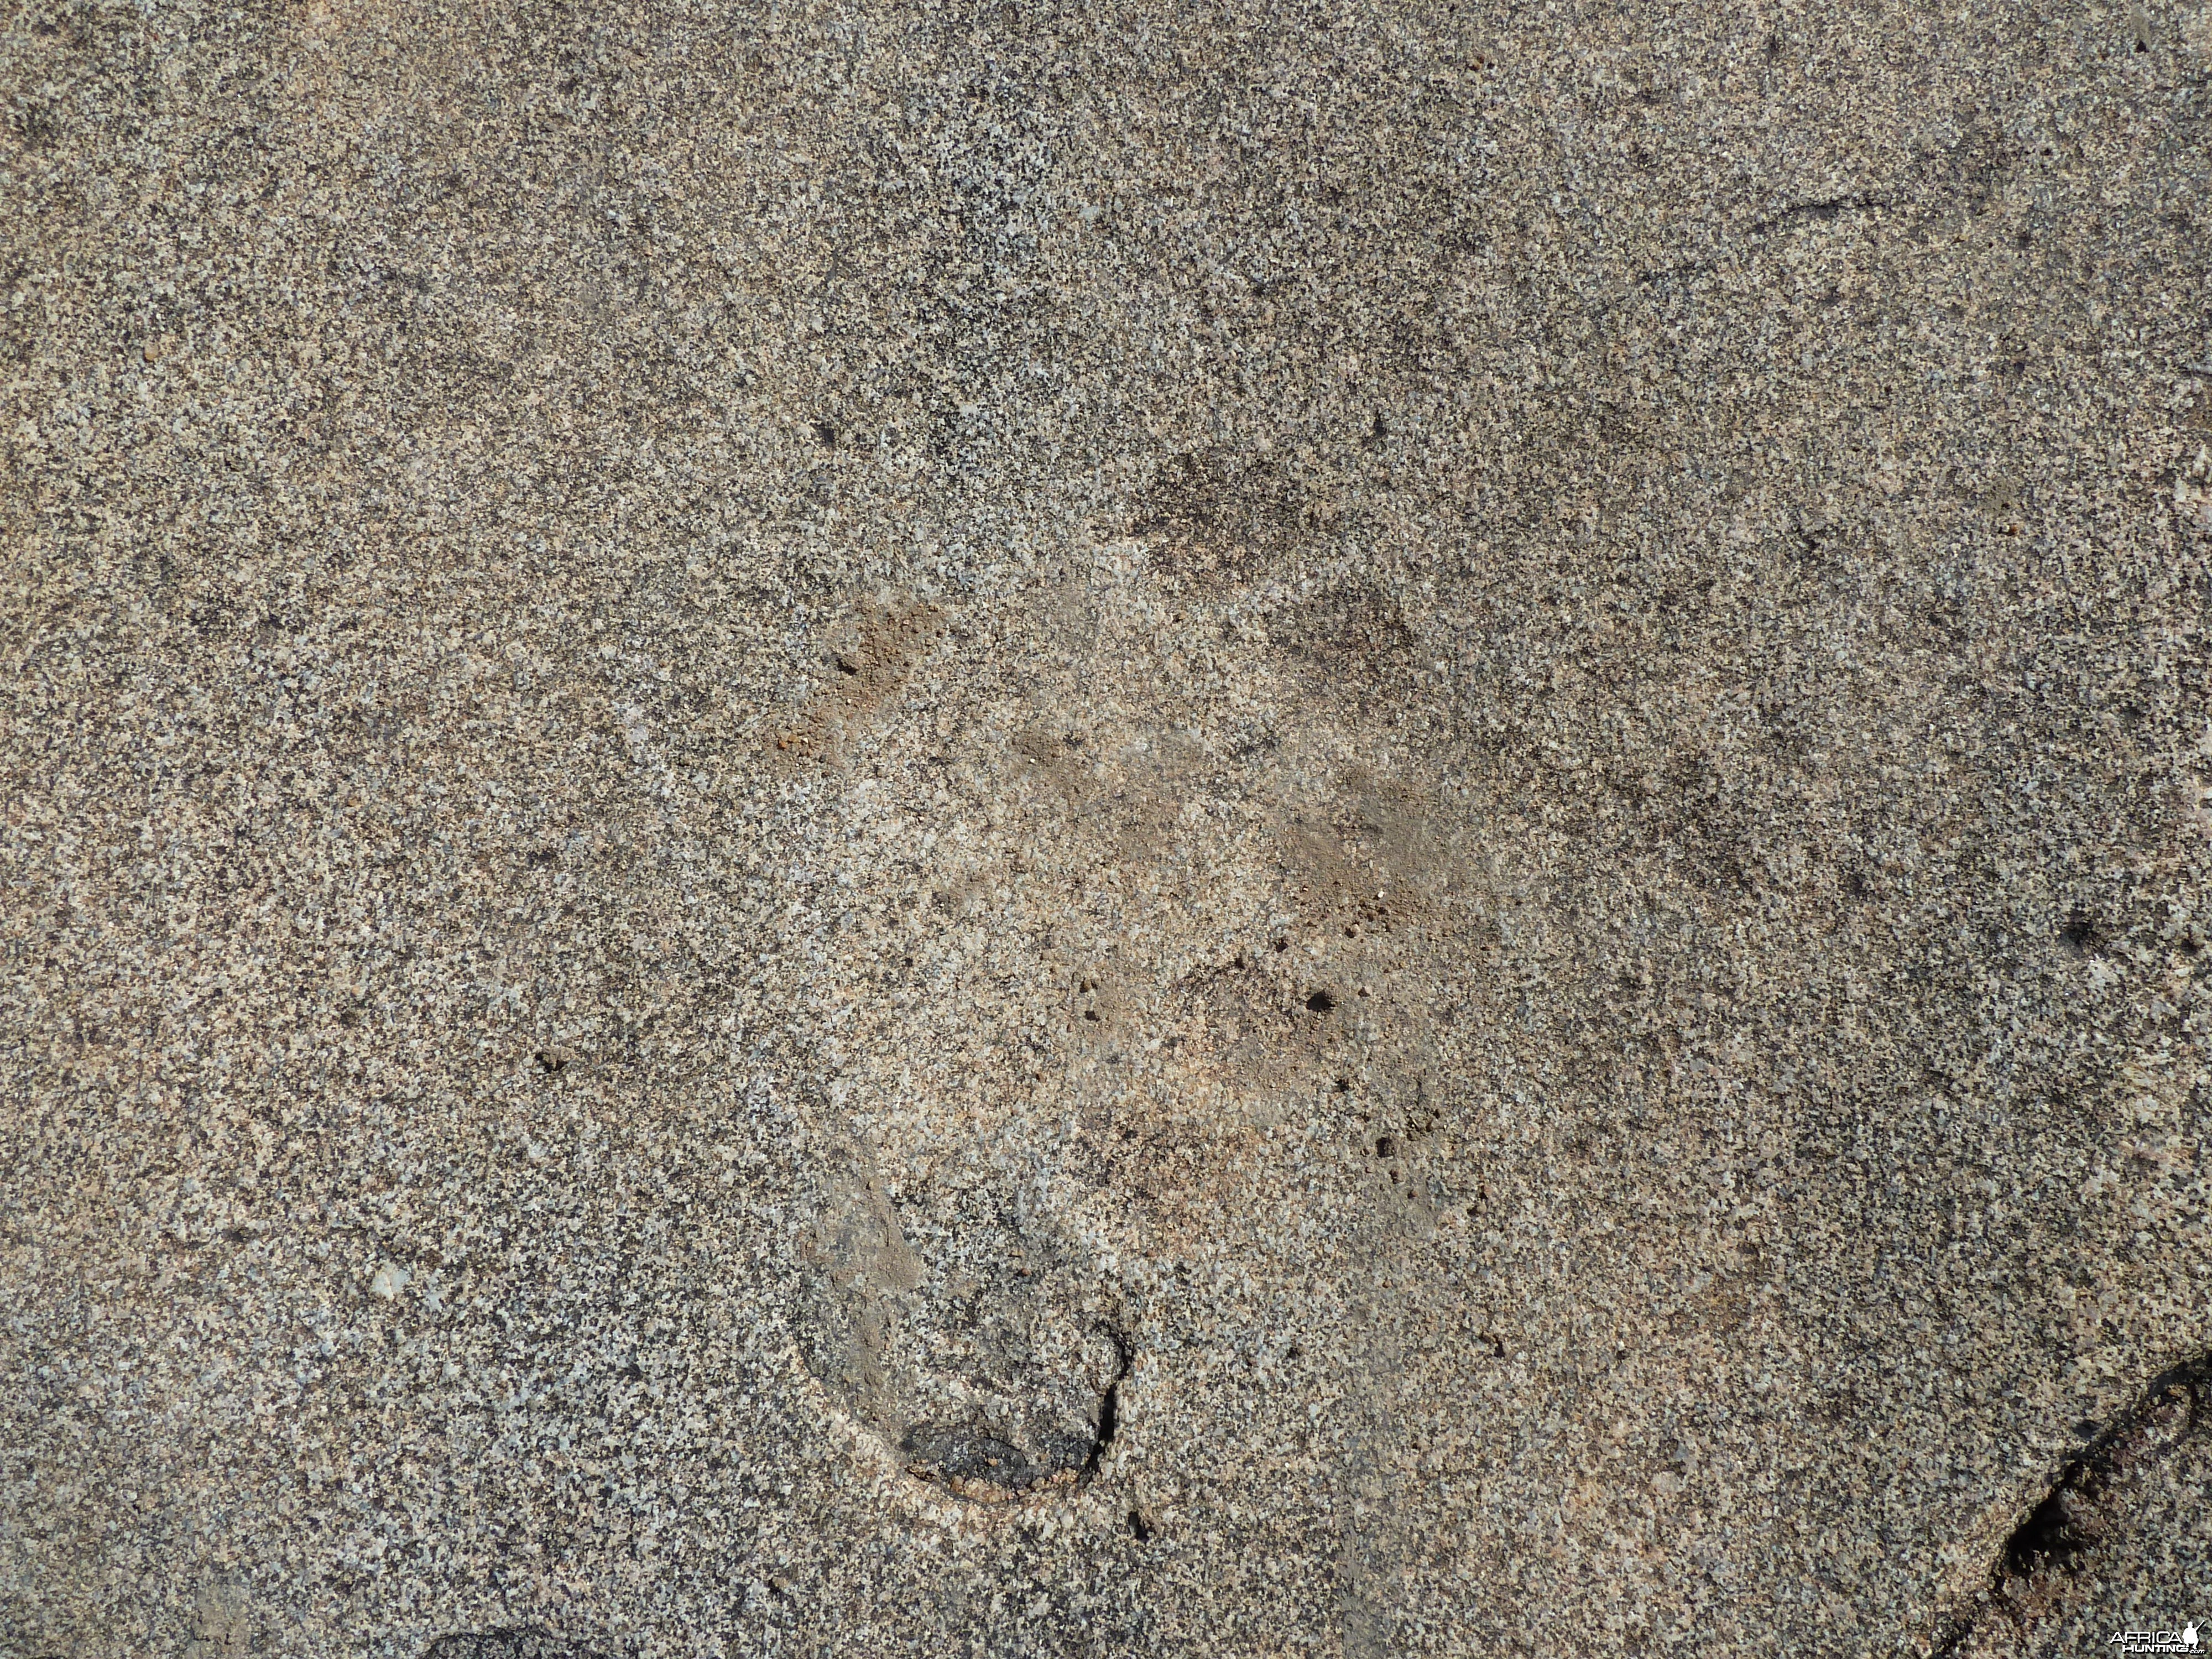 Lion tracks in the rock in Namibia